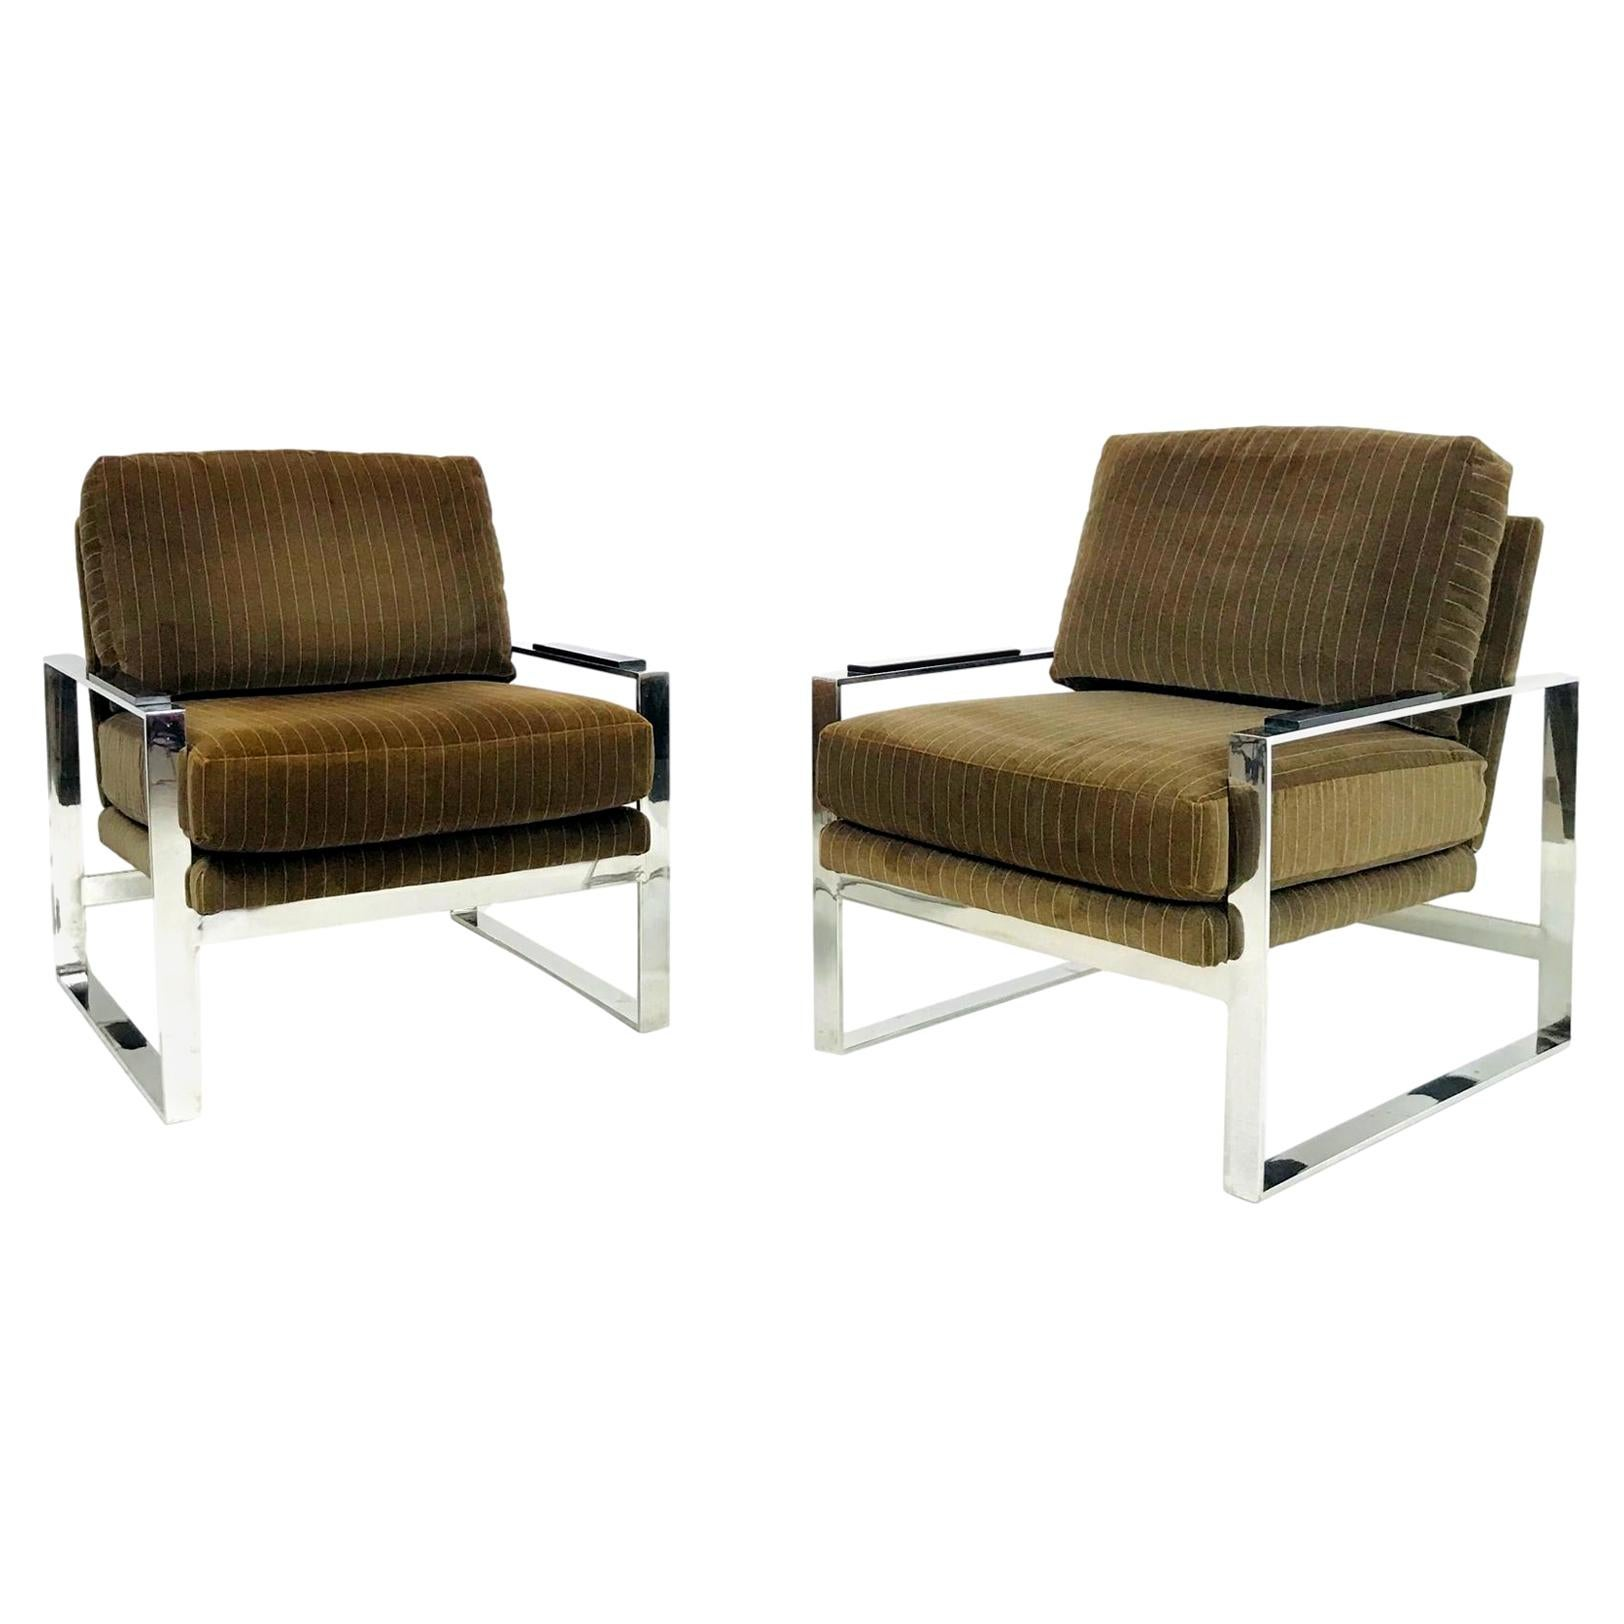 Pair of Chrome Lounge Chairs in the style of Milo Baughman